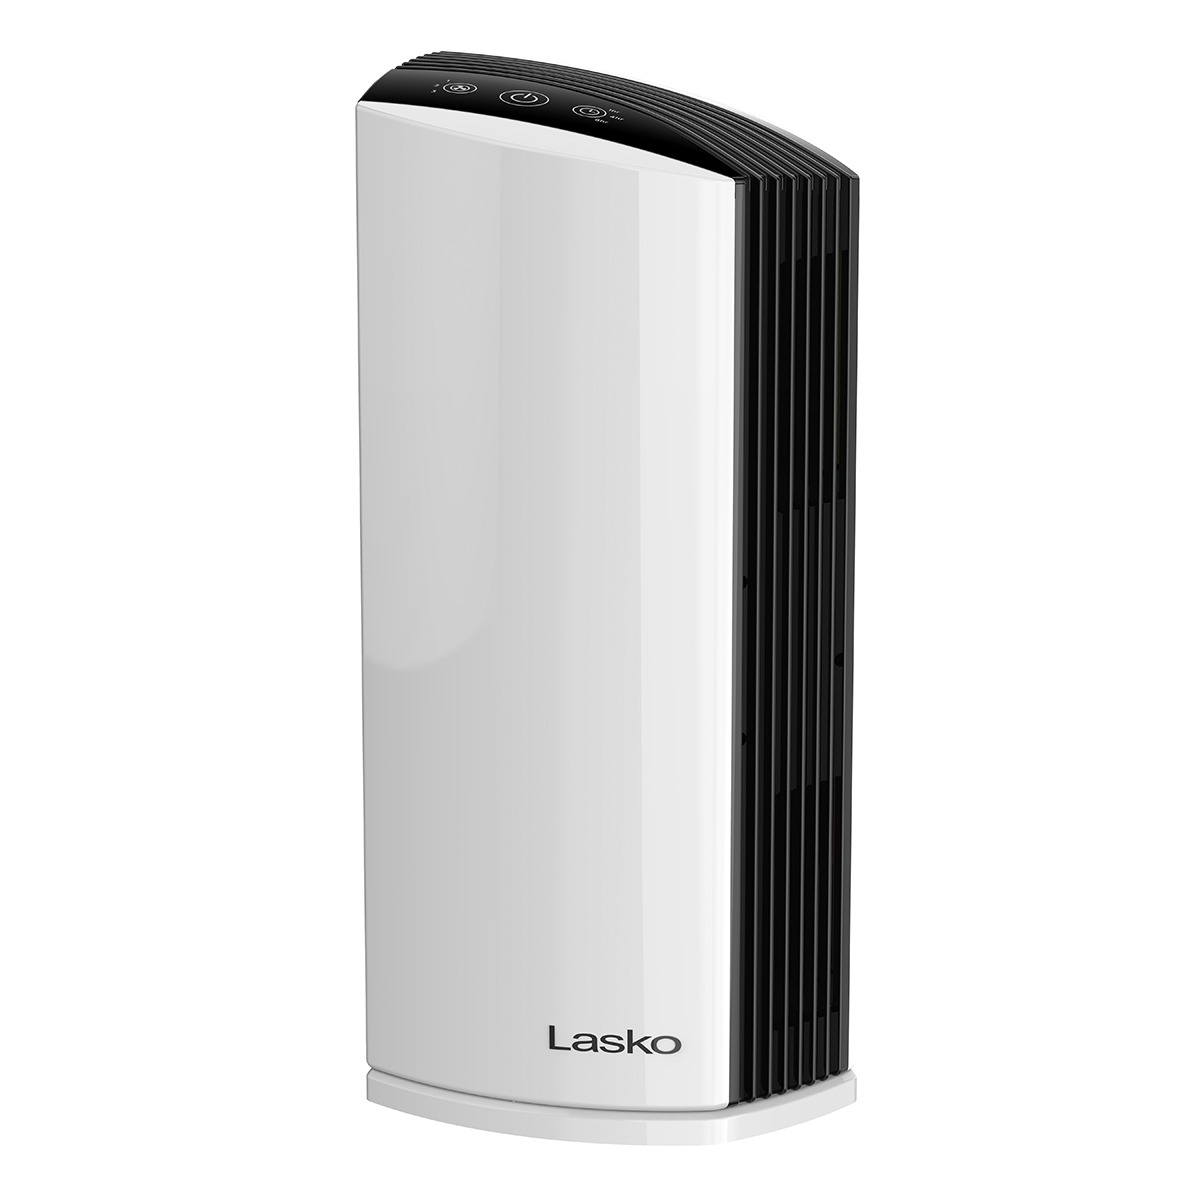 Lasko HEPA Filter Air Purifier Tower LP300